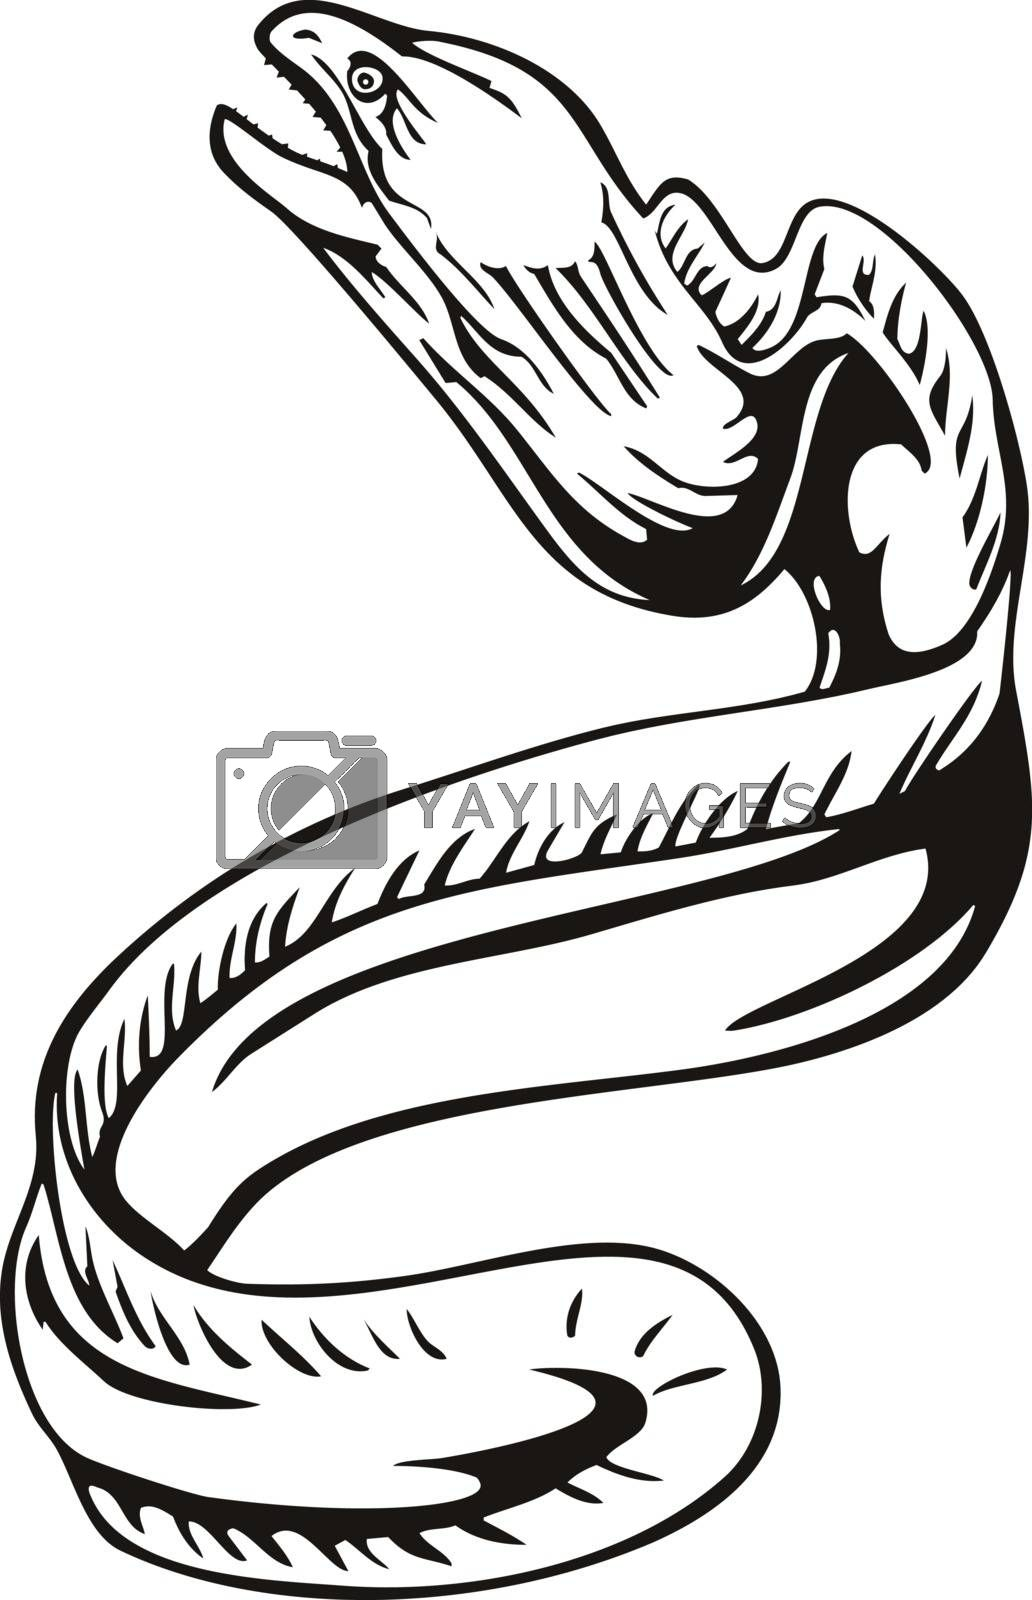 Retro woodcut style illustration of a greyface grey moray eel, Gymnothorax nubilus, freckled moray, slender moray or white-eyed moray, swimming up on isolated background done in black and white.